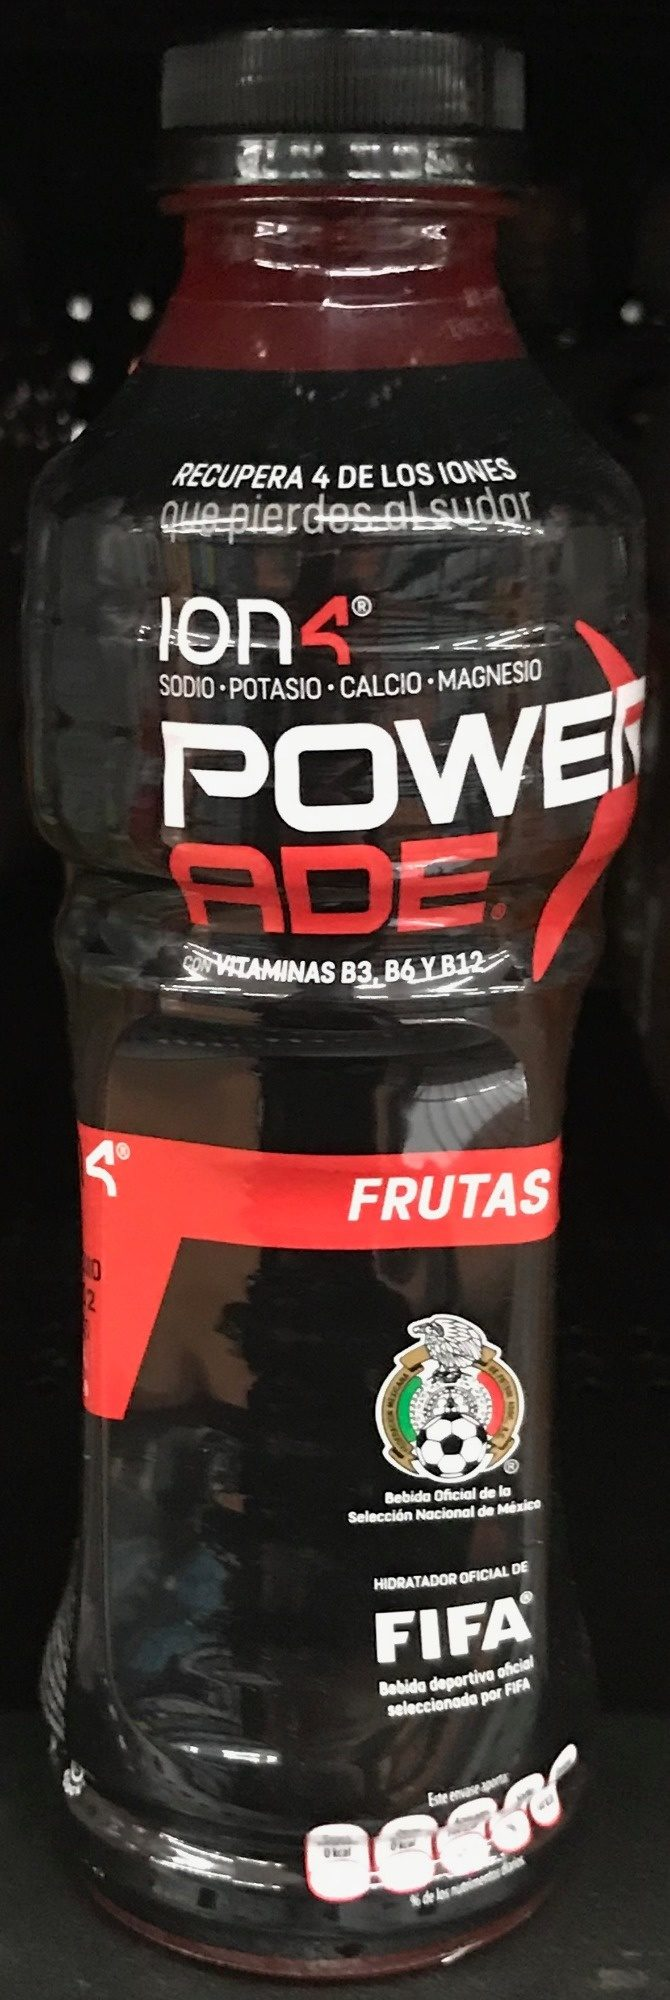 Powerade Ion 4 Frutas - Product - es